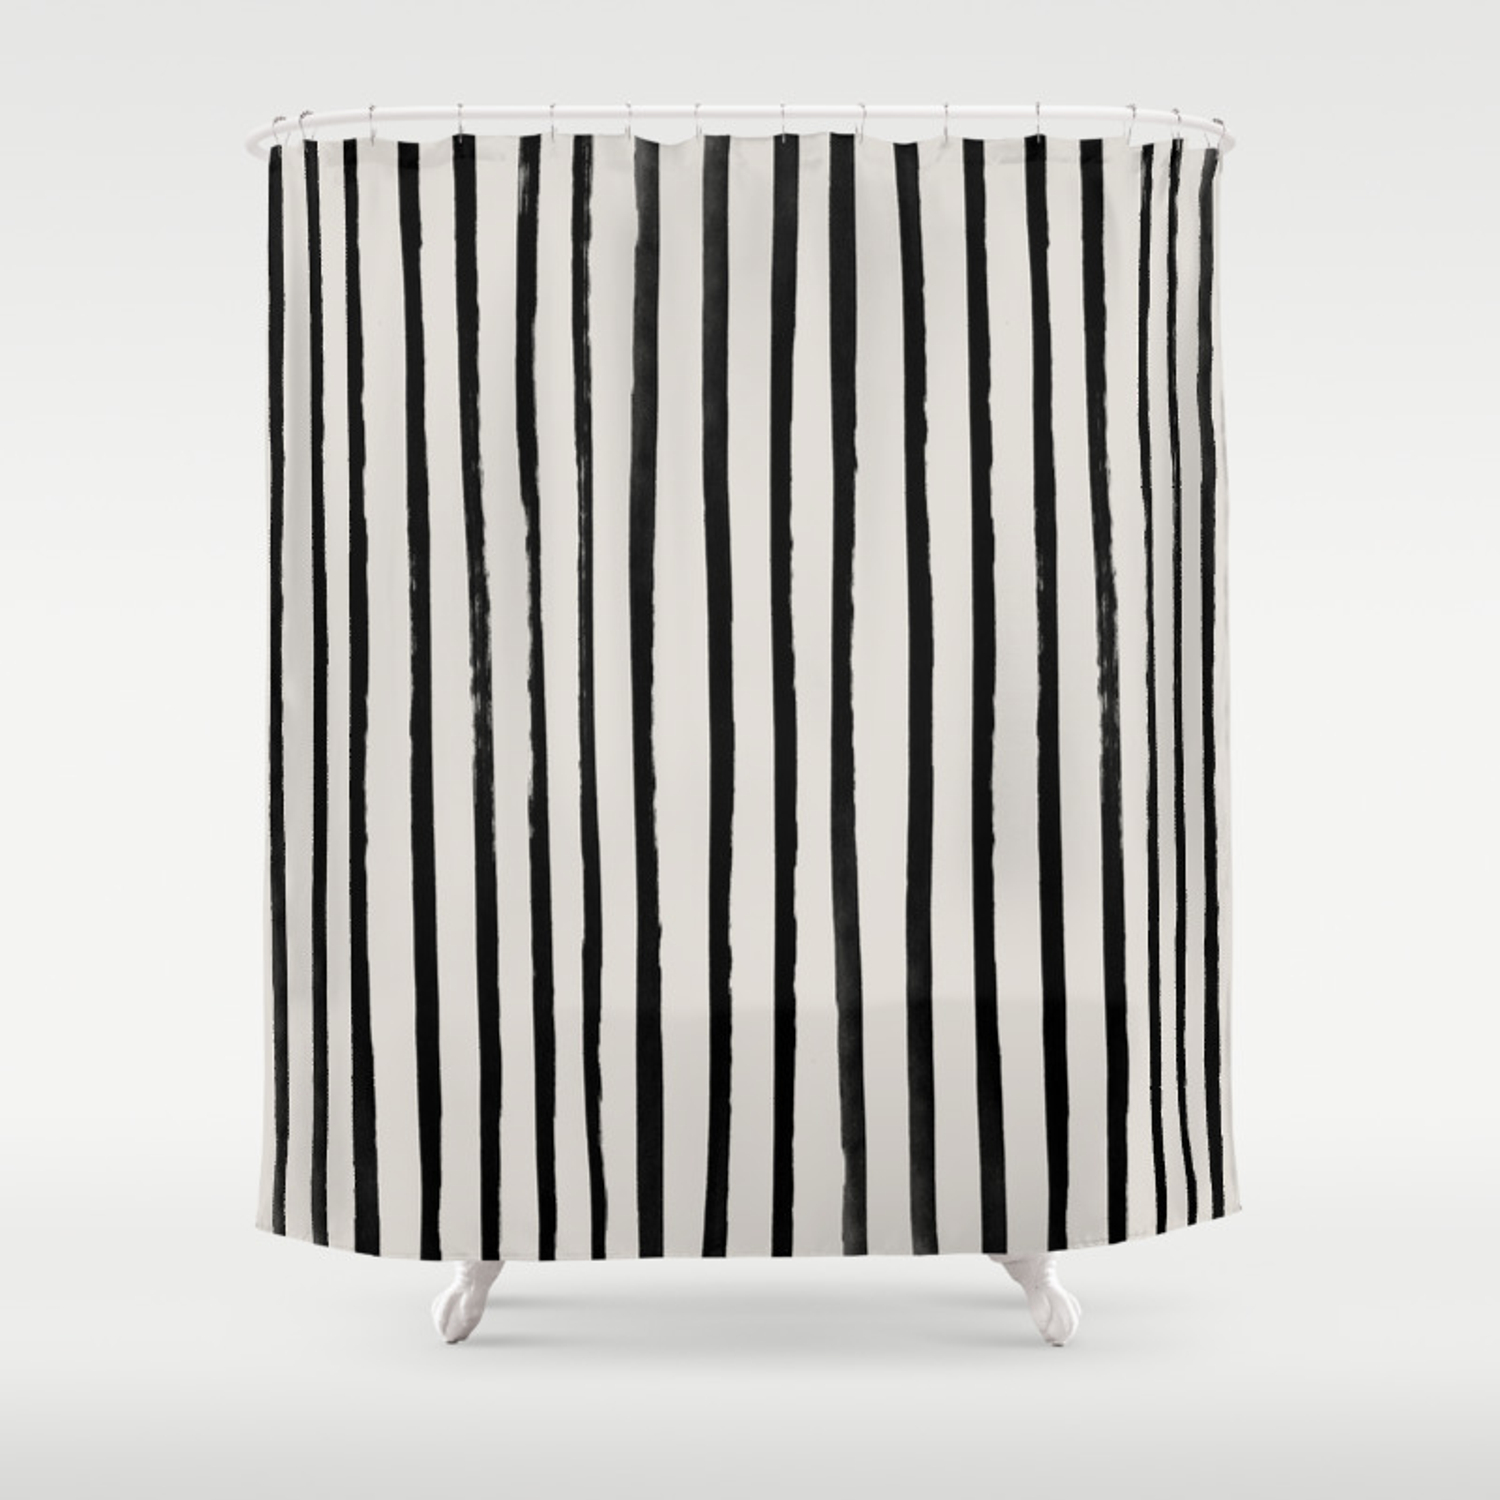 Vertical Black And White Watercolor Stripes Shower Curtain